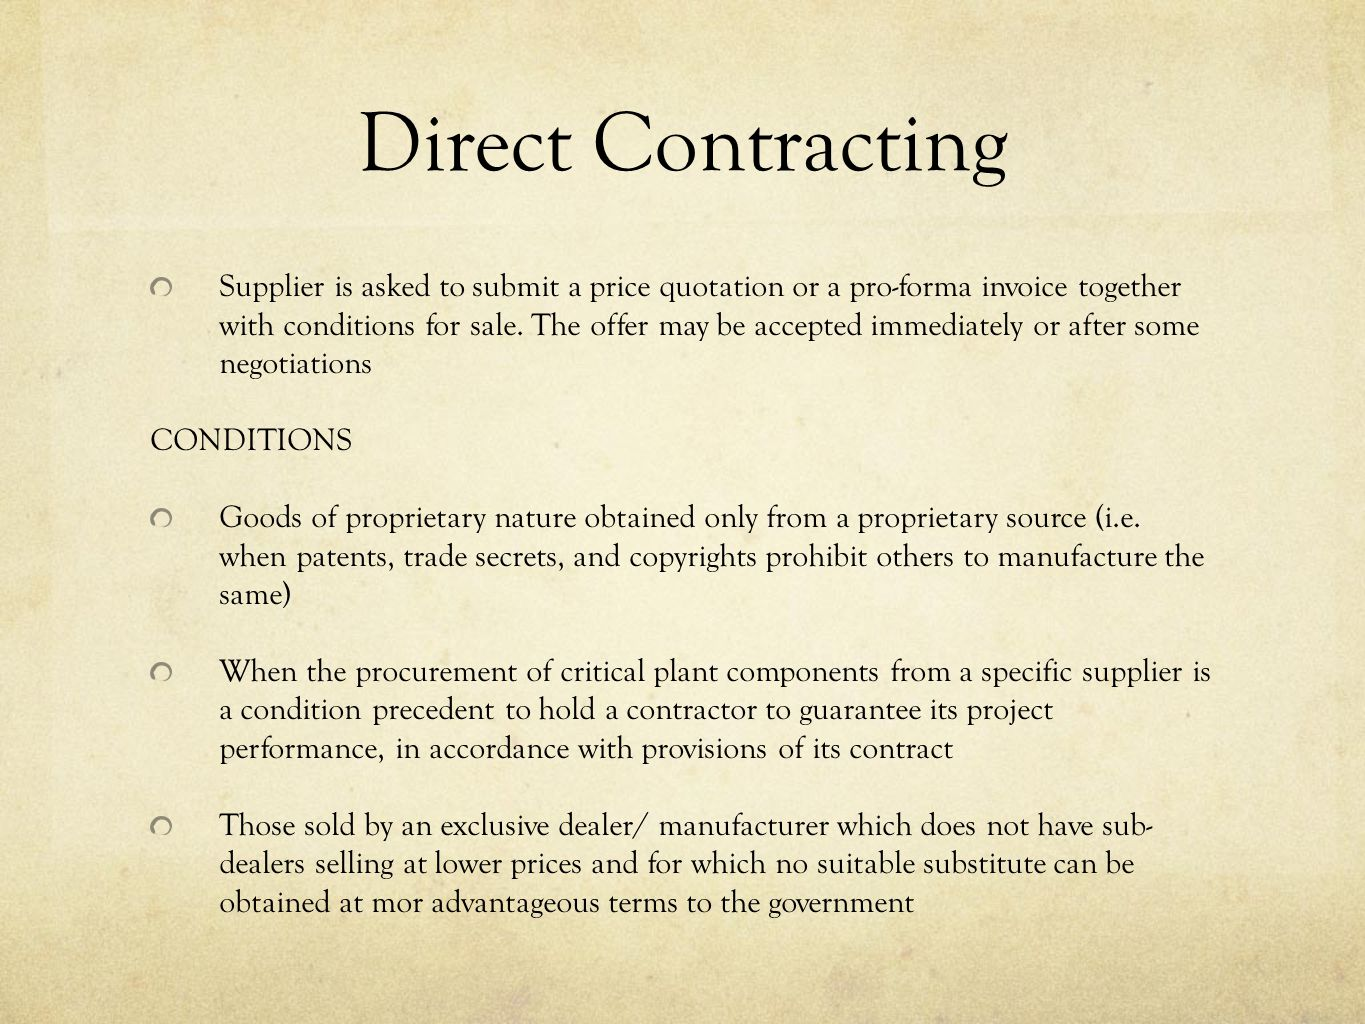 Direct Contracting